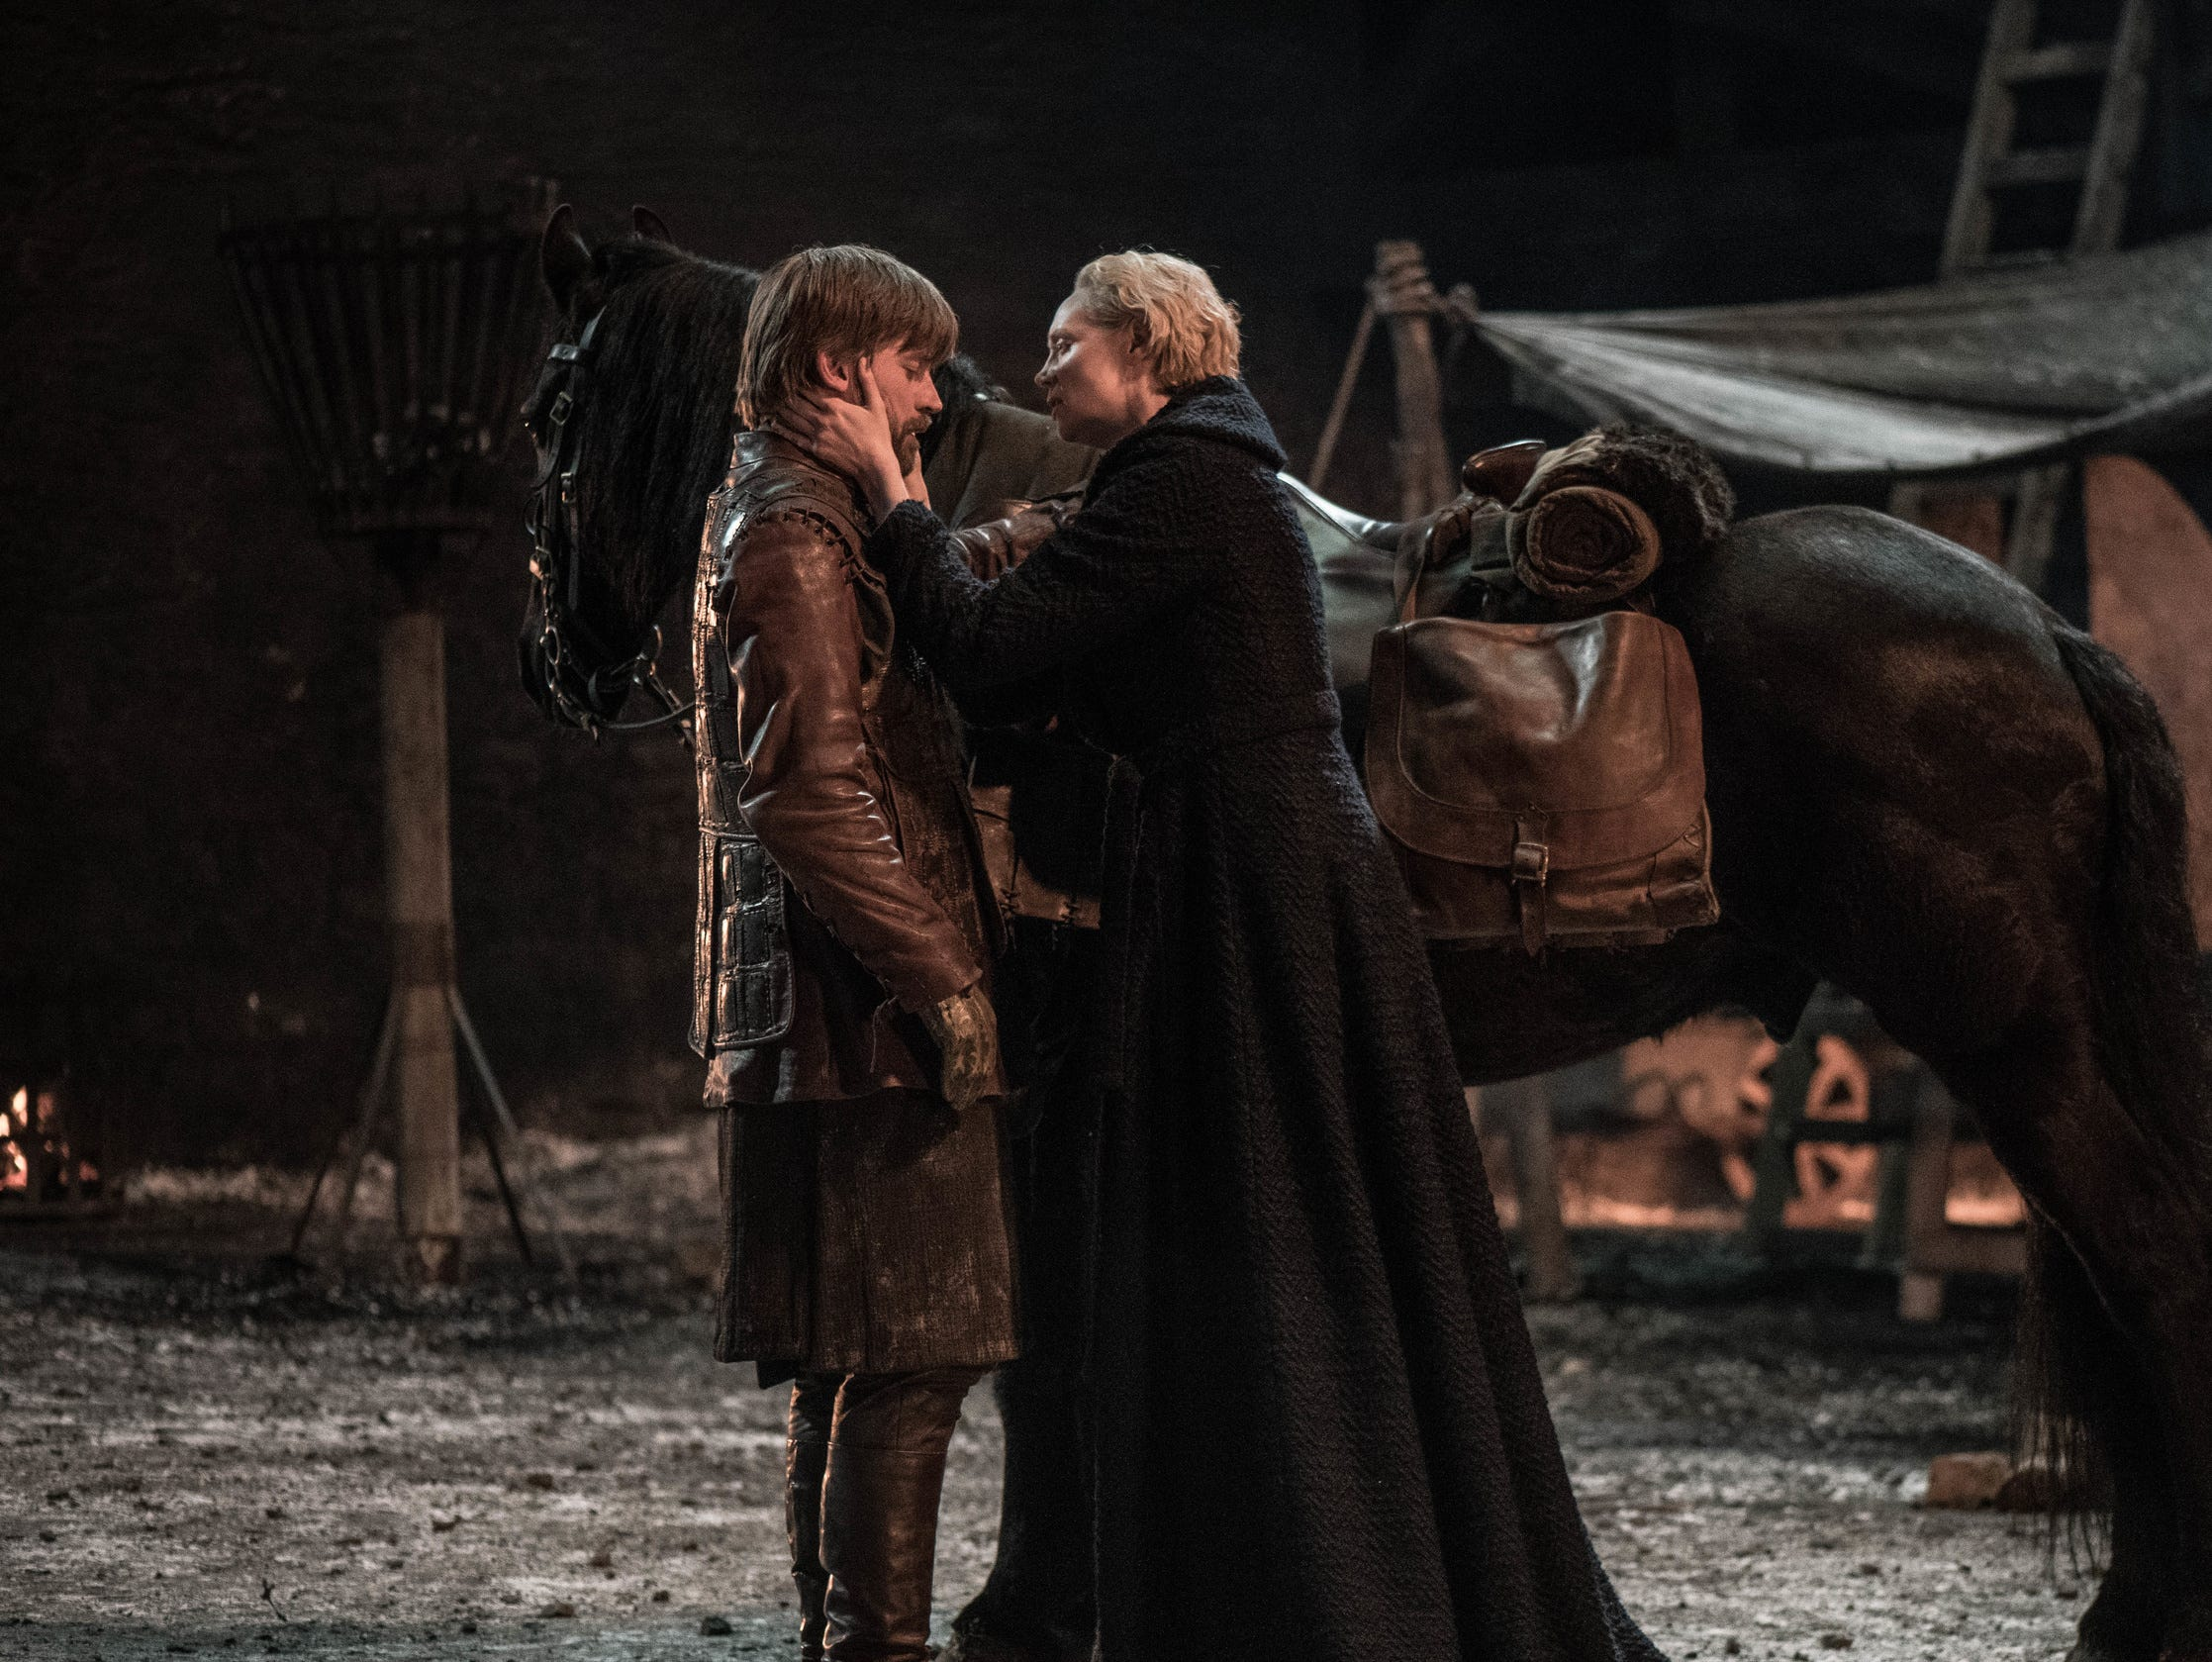 Jaime Lannister (Nikolaj Coster-Waldau), left, and Brienne of Tarth (Gwendoline Christie) share a sad goodbye in 'The Last of the Starks' episode of 'Game of Thrones.'